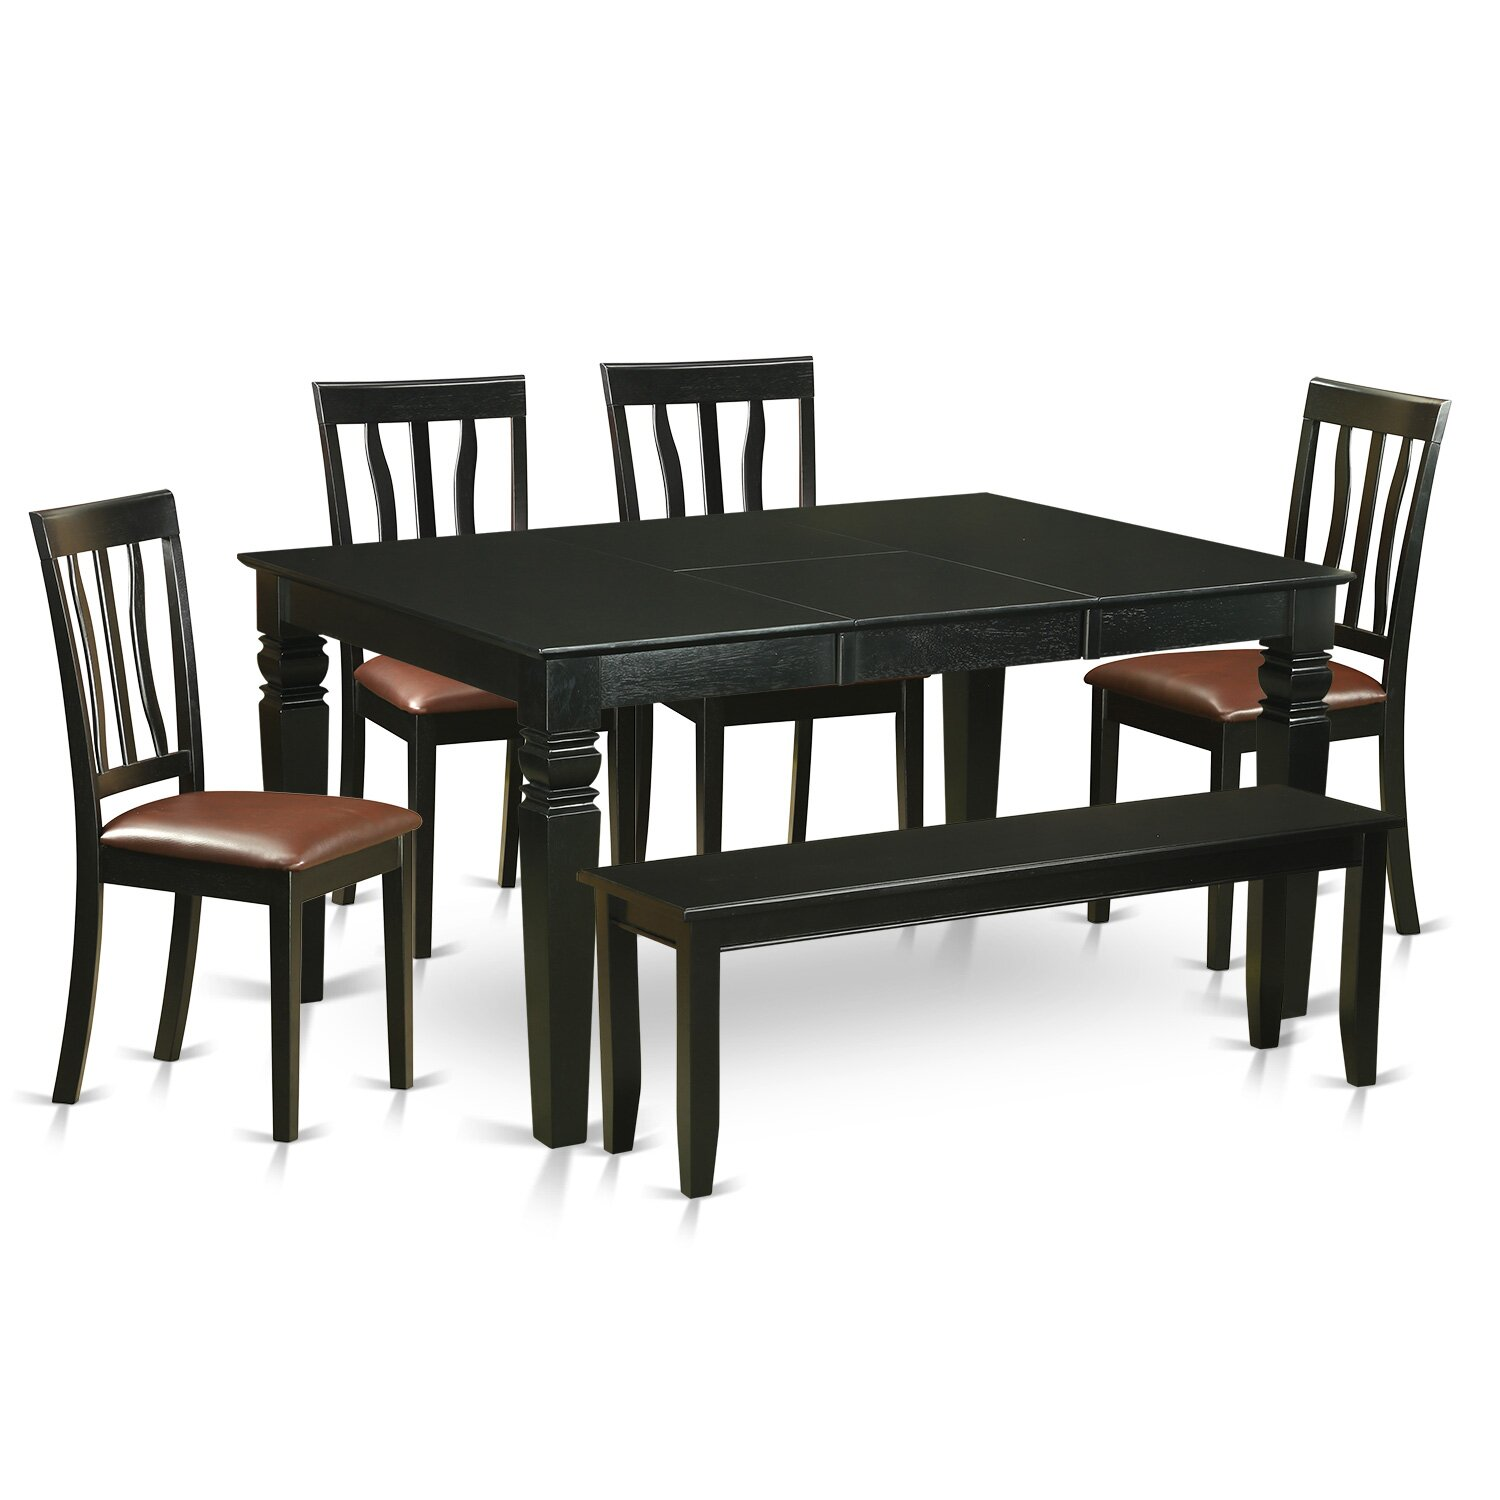 Wooden importers weston 6 piece dining set wayfair for Dining room furnishings